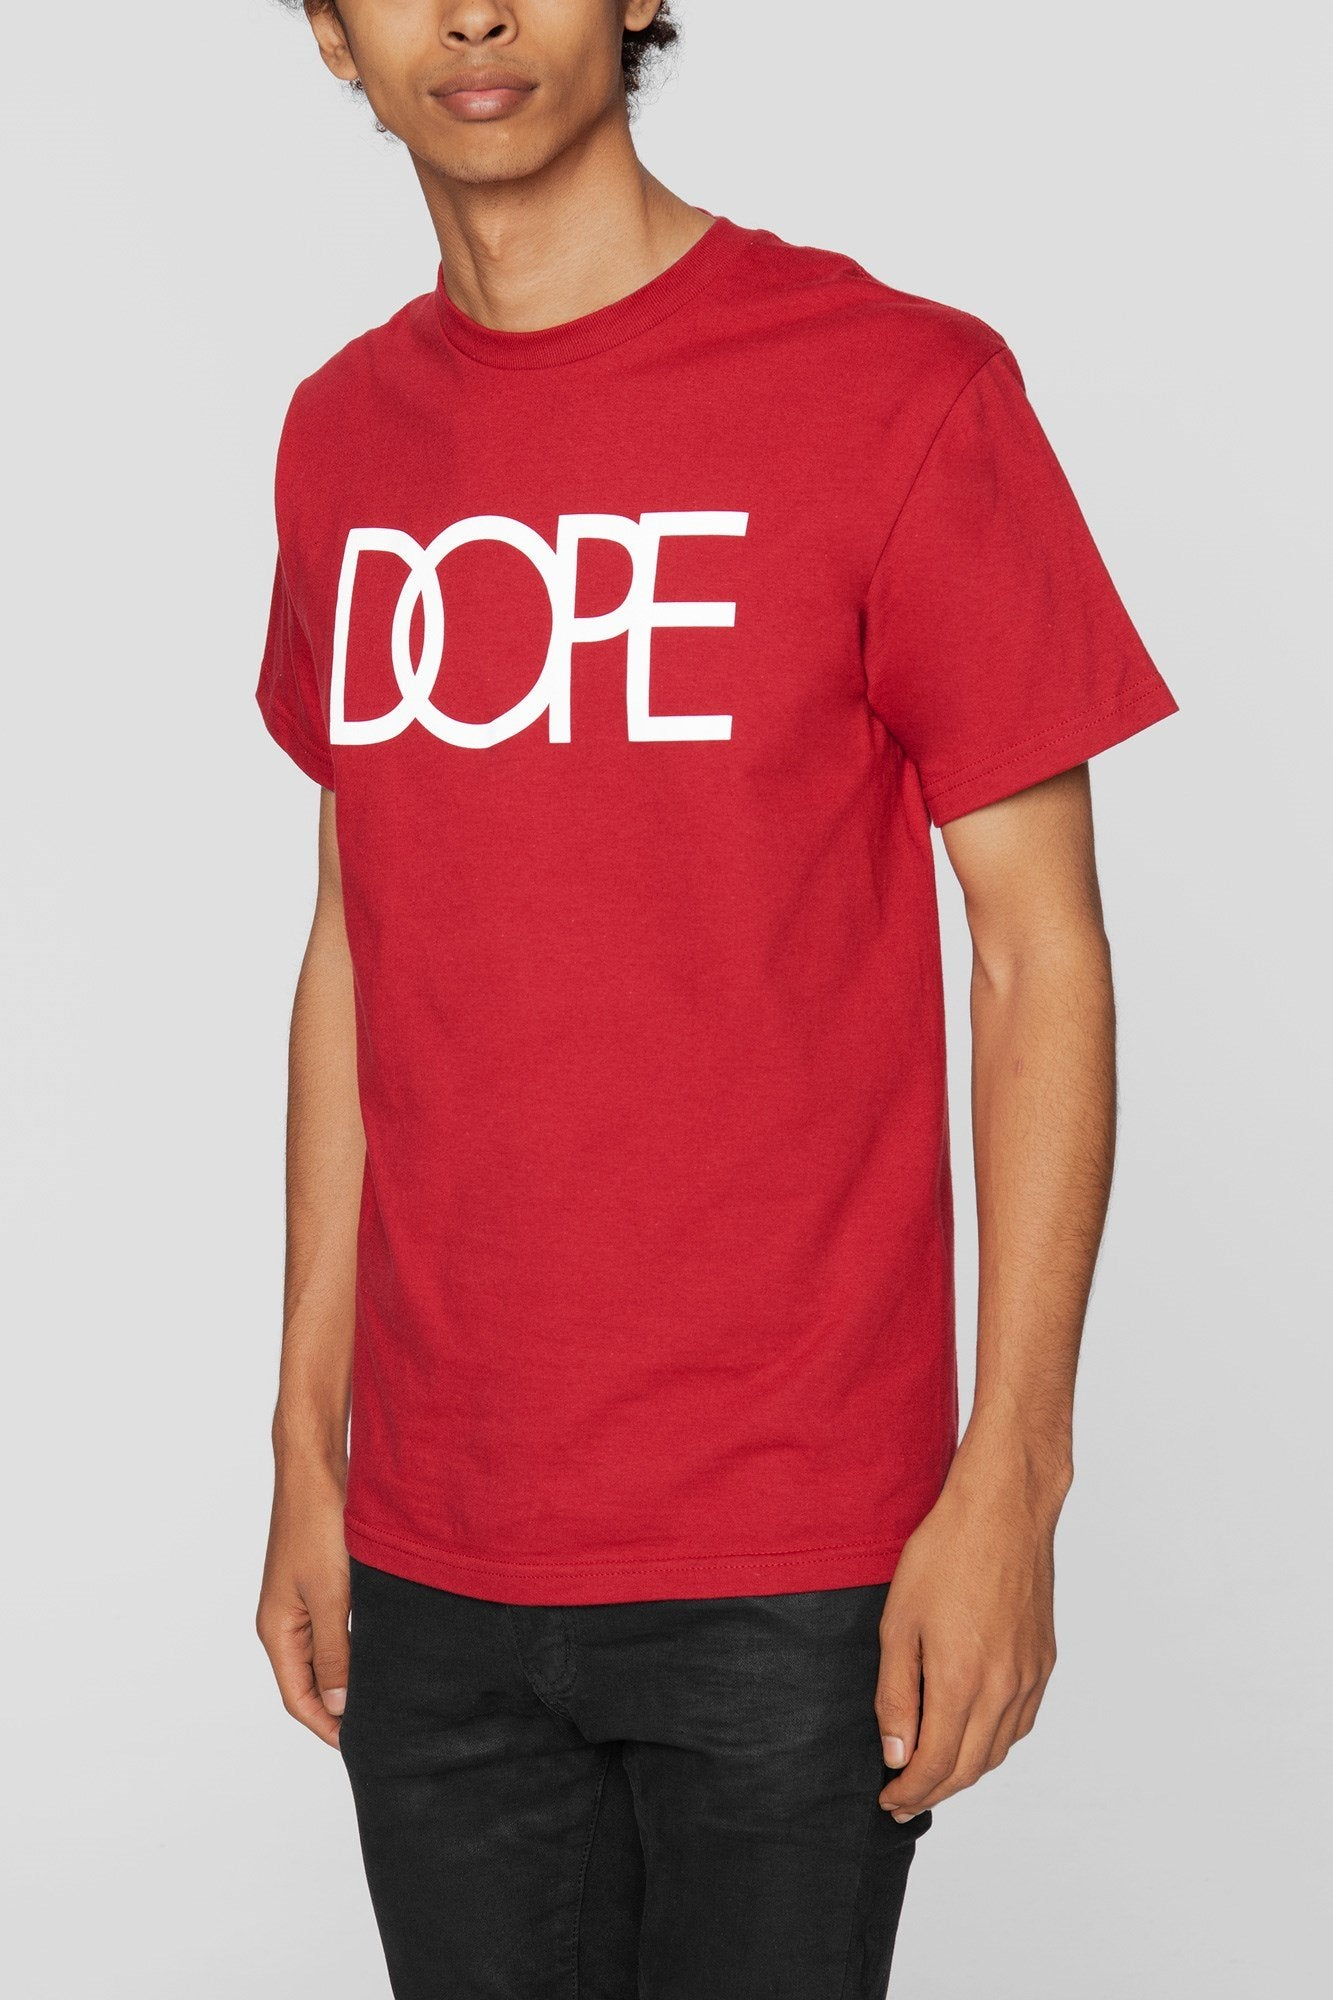 DOPE Classic Logo Tee #Red/White